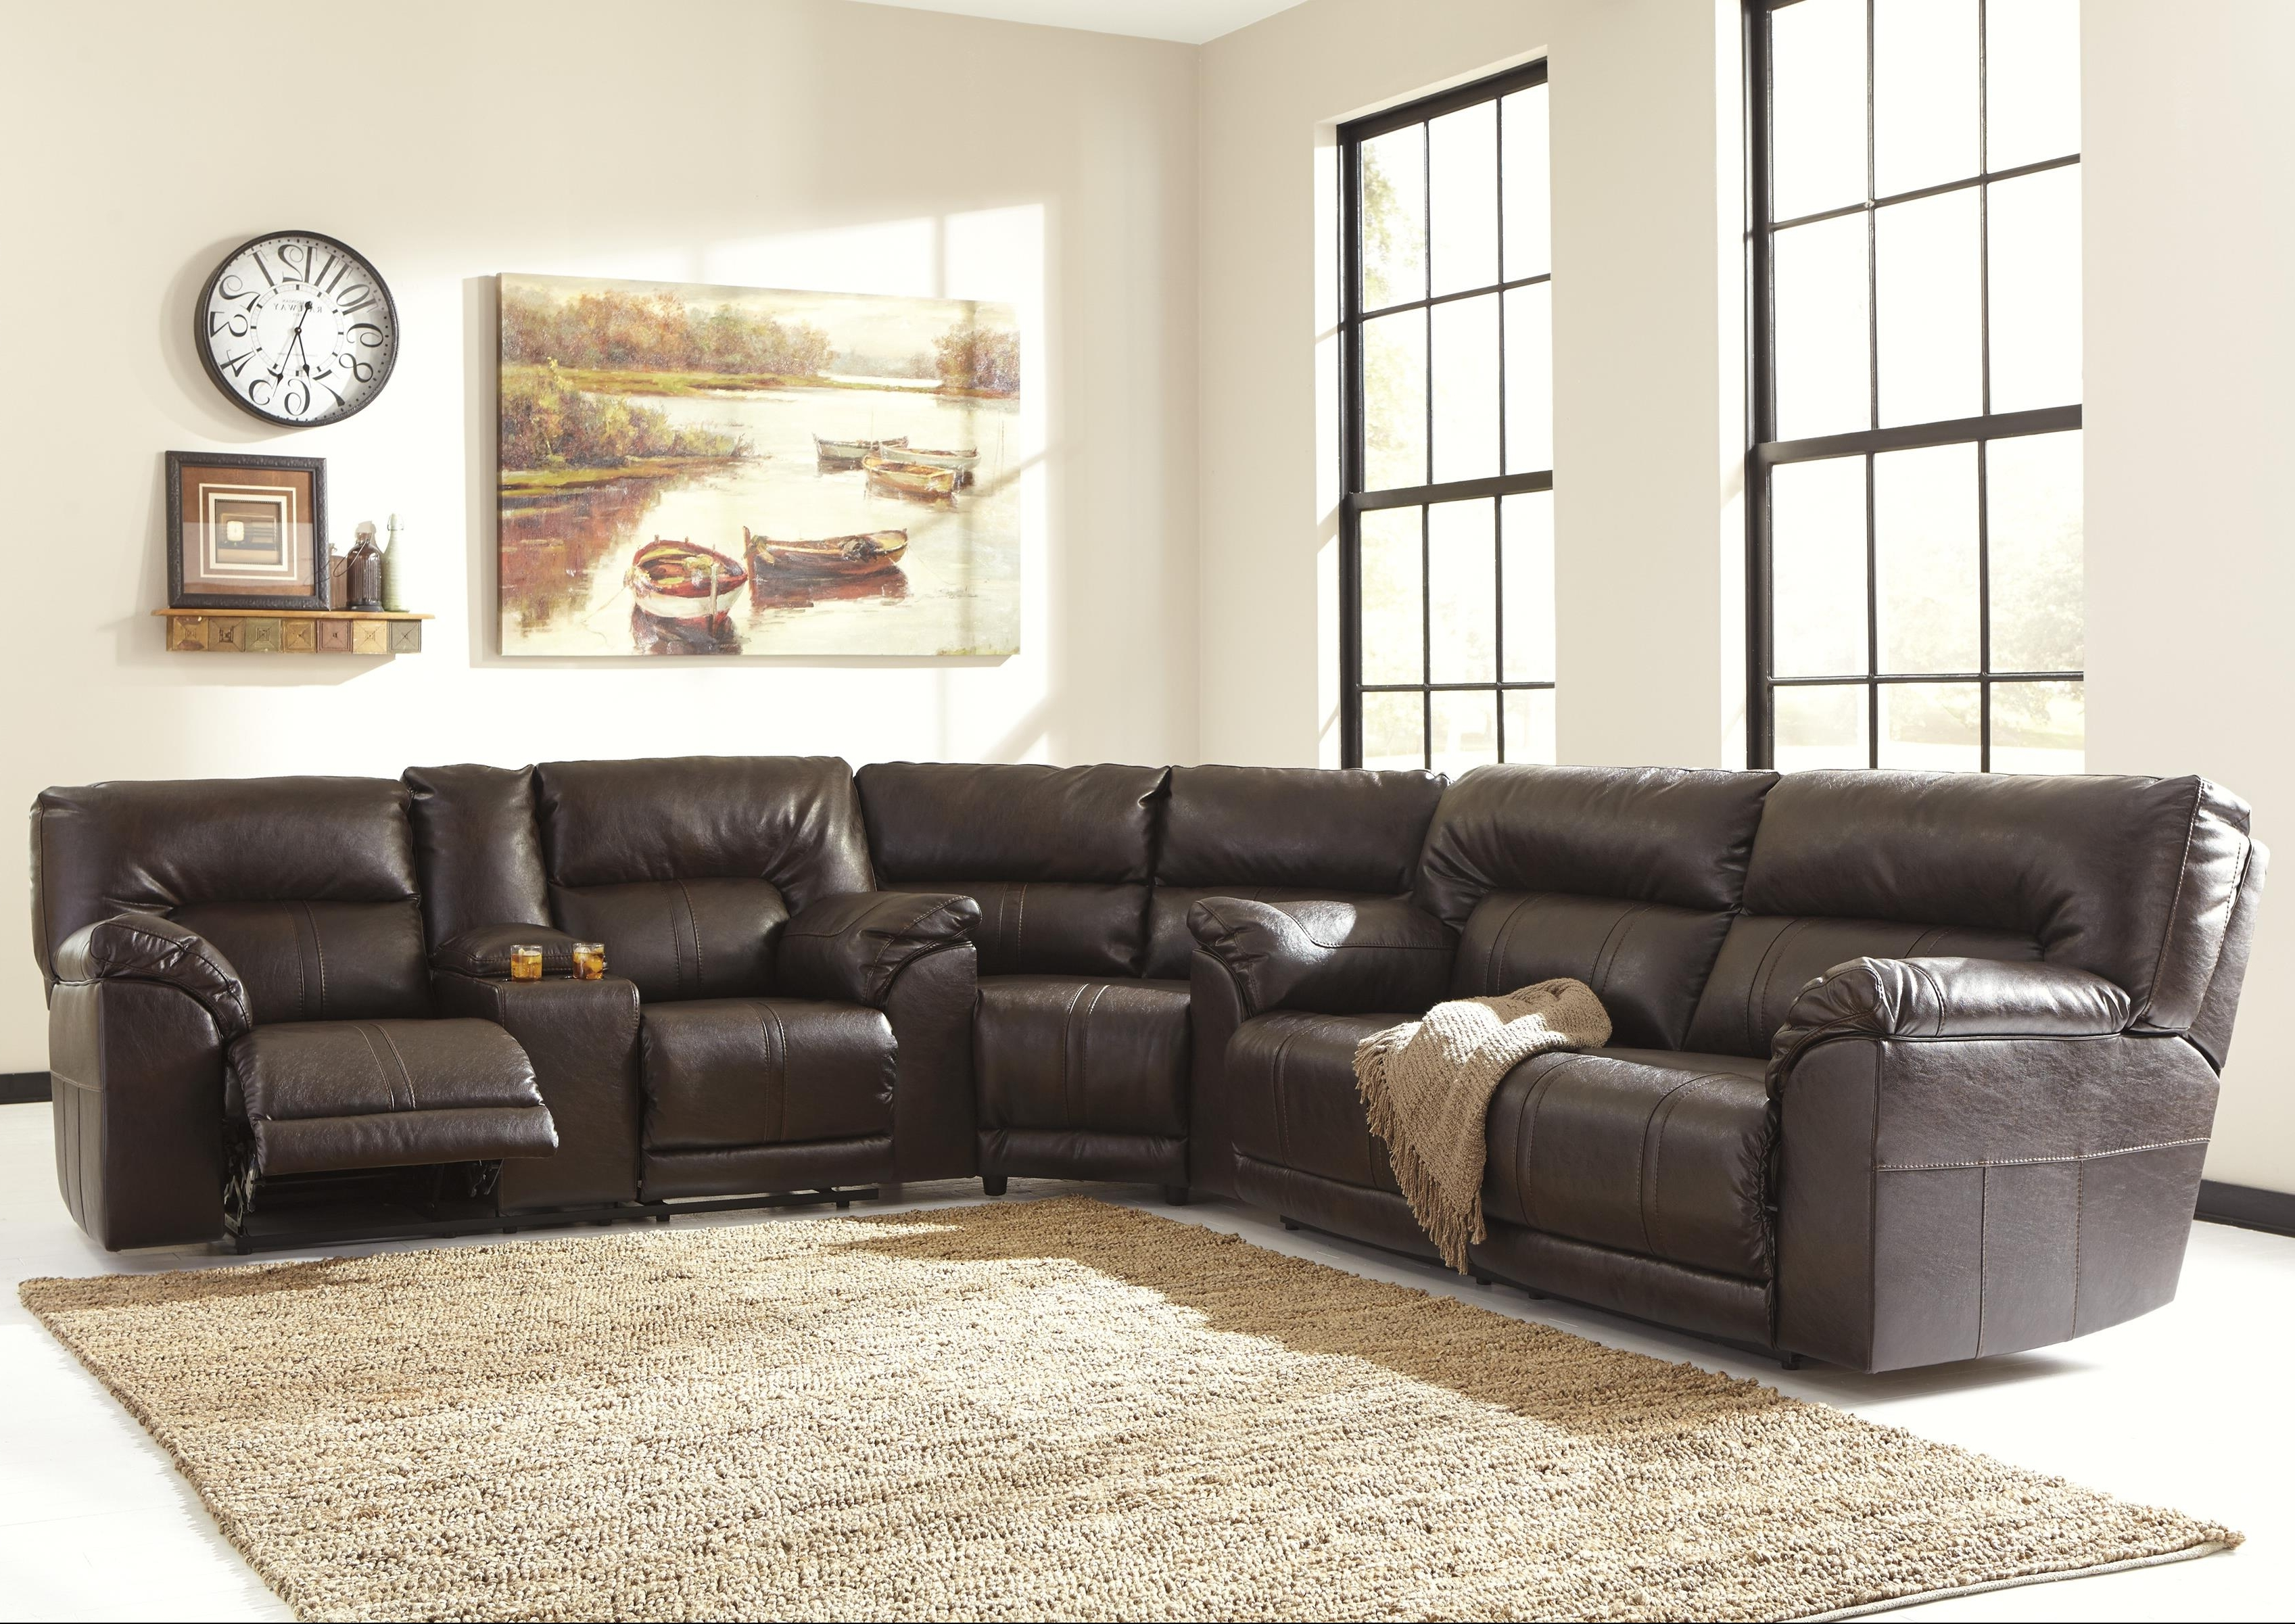 Wolf And Gardiner Wolf Regarding Most Popular Nashville Sectional Sofas (View 7 of 20)